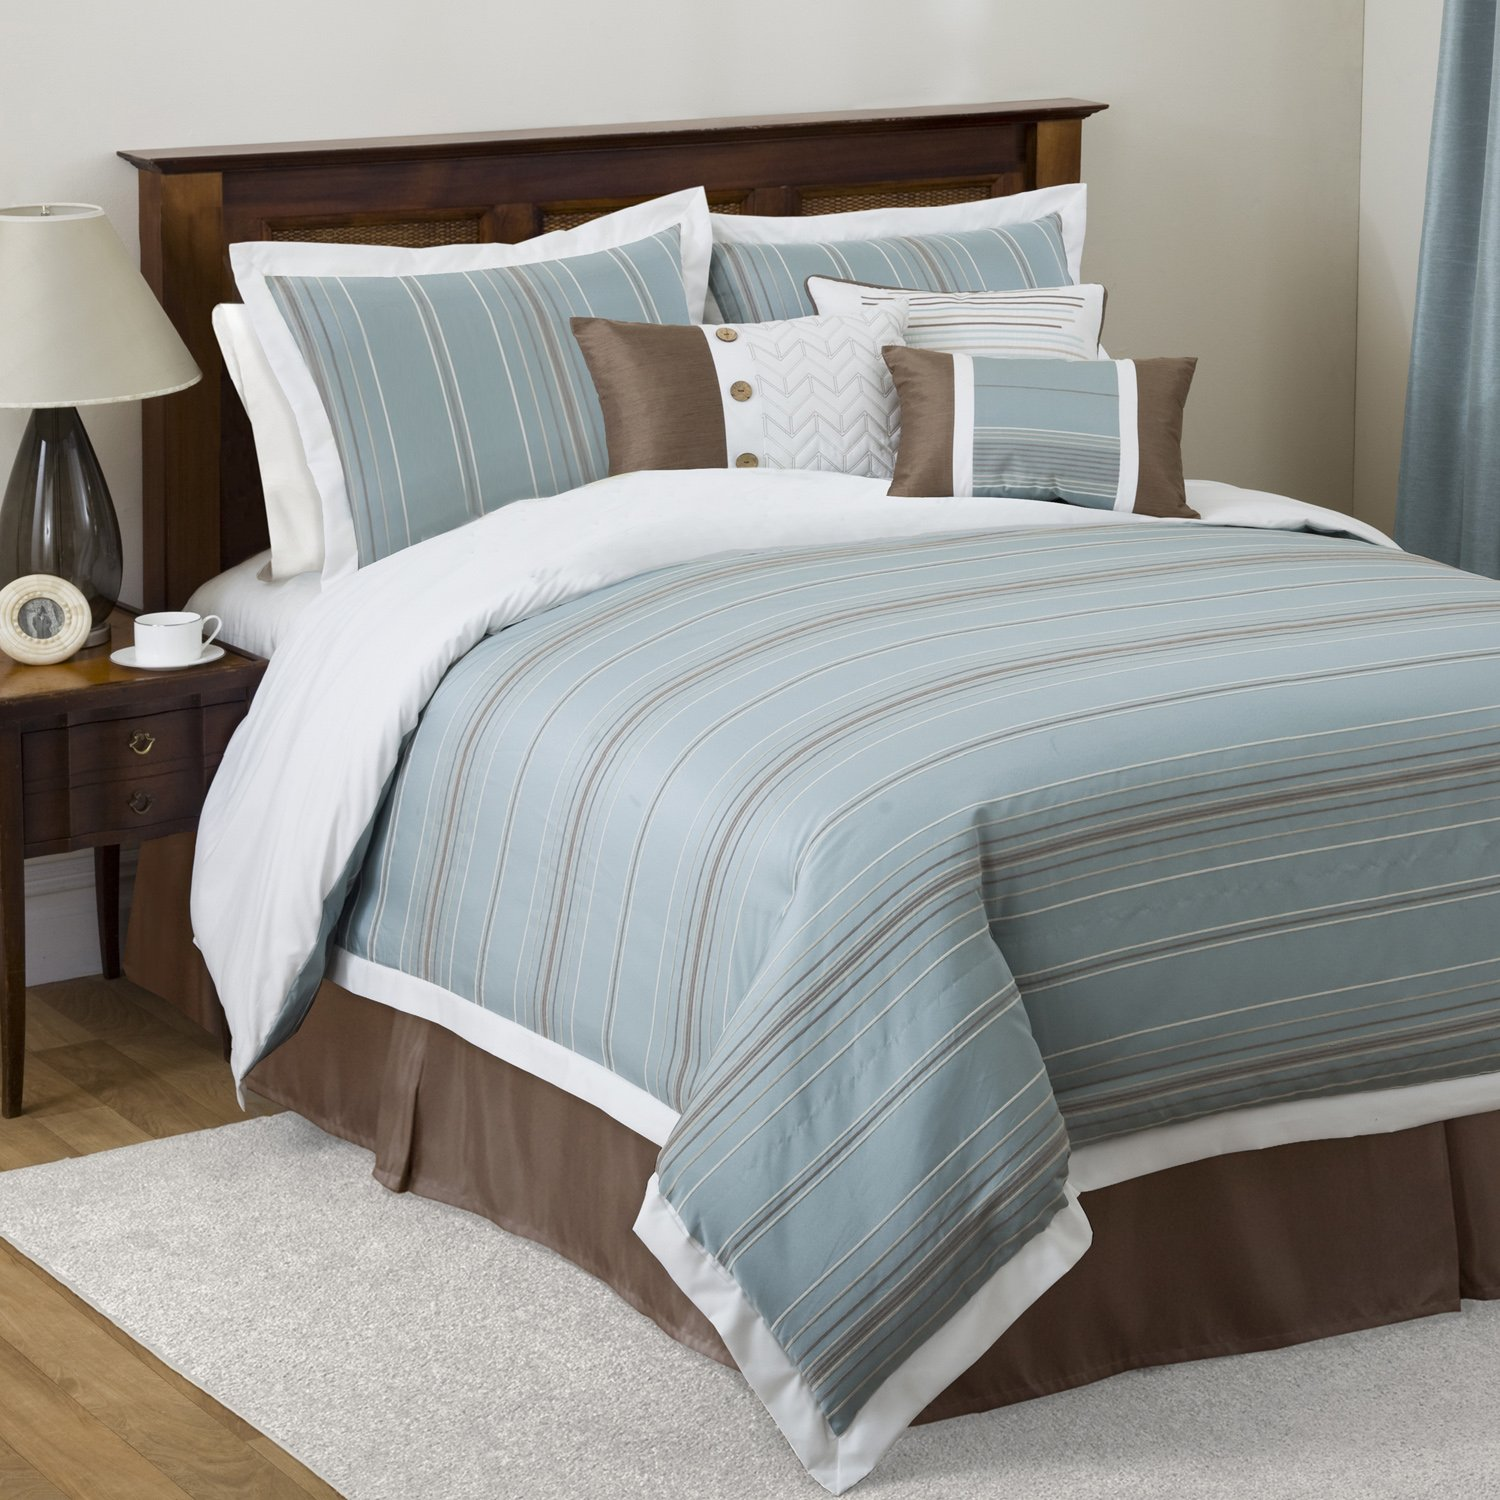 Blue and brown bed sets home decor gallery for Bed settings